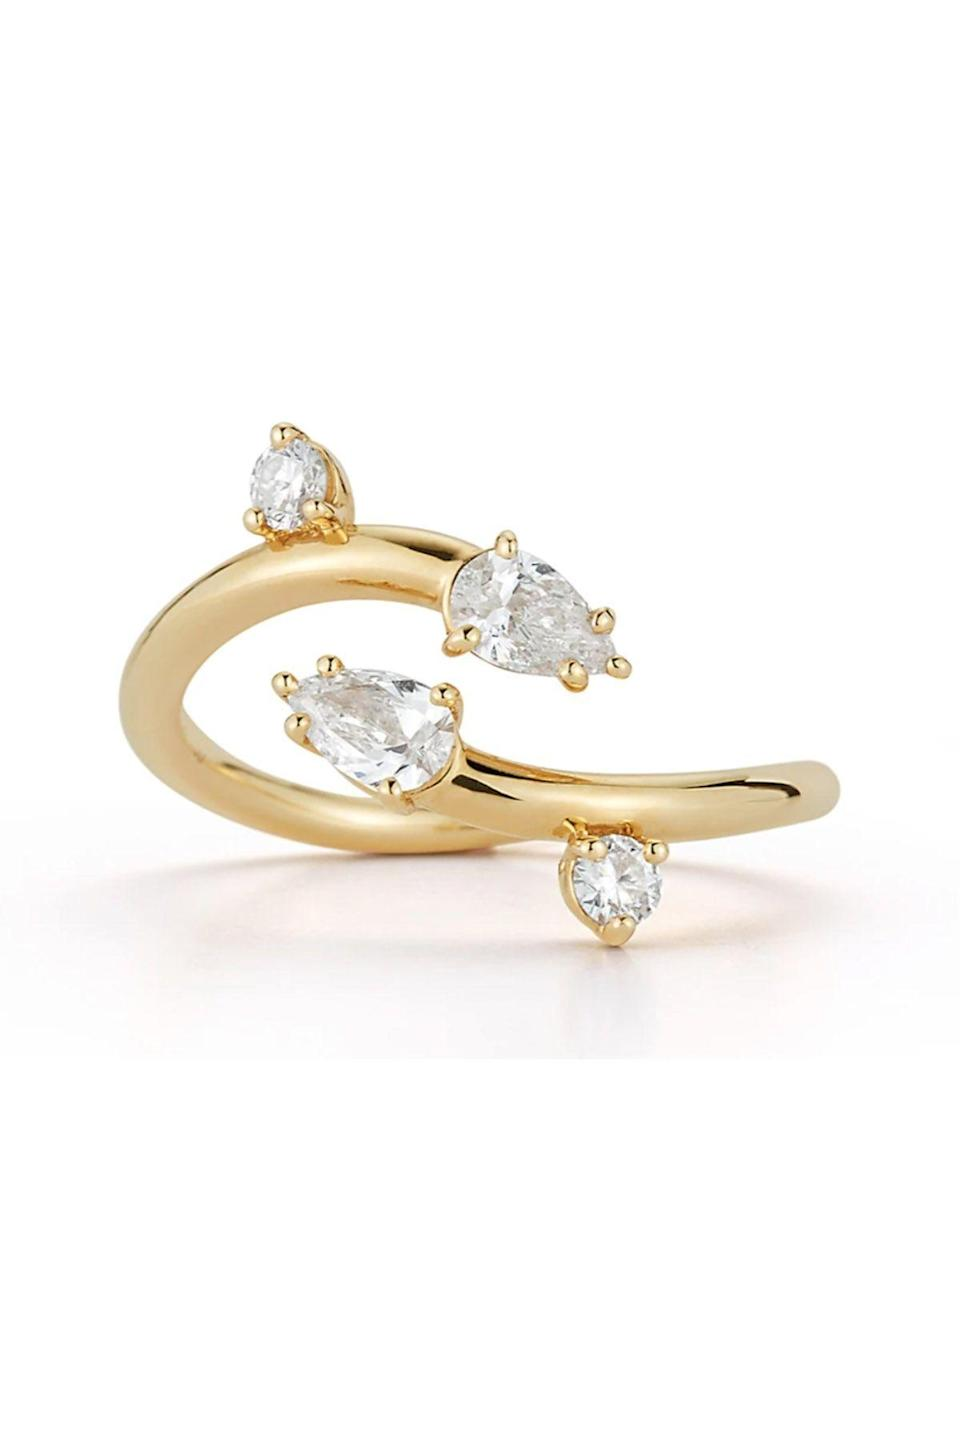 """<p><strong>Renna</strong></p><p>rennajewels.com</p><p><strong>$4500.00</strong></p><p><a href=""""https://rennajewels.com/collections/rings/products/lets-dance-ring-gold-and-diamond"""" rel=""""nofollow noopener"""" target=""""_blank"""" data-ylk=""""slk:Shop Now"""" class=""""link rapid-noclick-resp"""">Shop Now</a></p><p>We love the balancing acts the stones play with Renna's Wave Study Ring. </p>"""